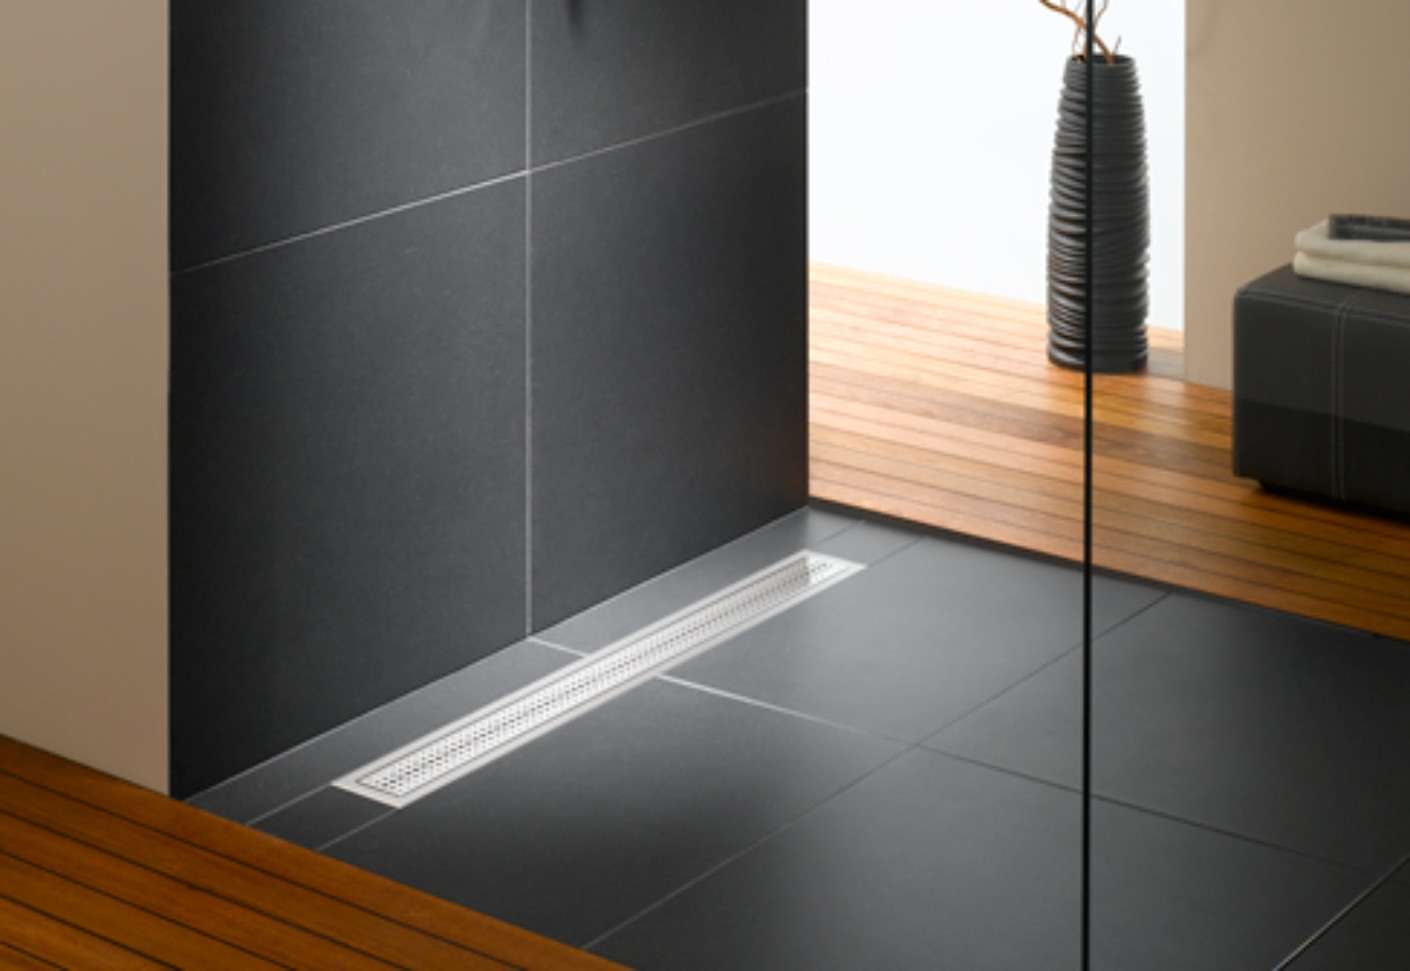 Boxspringbetten De Floor-level Shower System Poresta Bfr Universal Drain